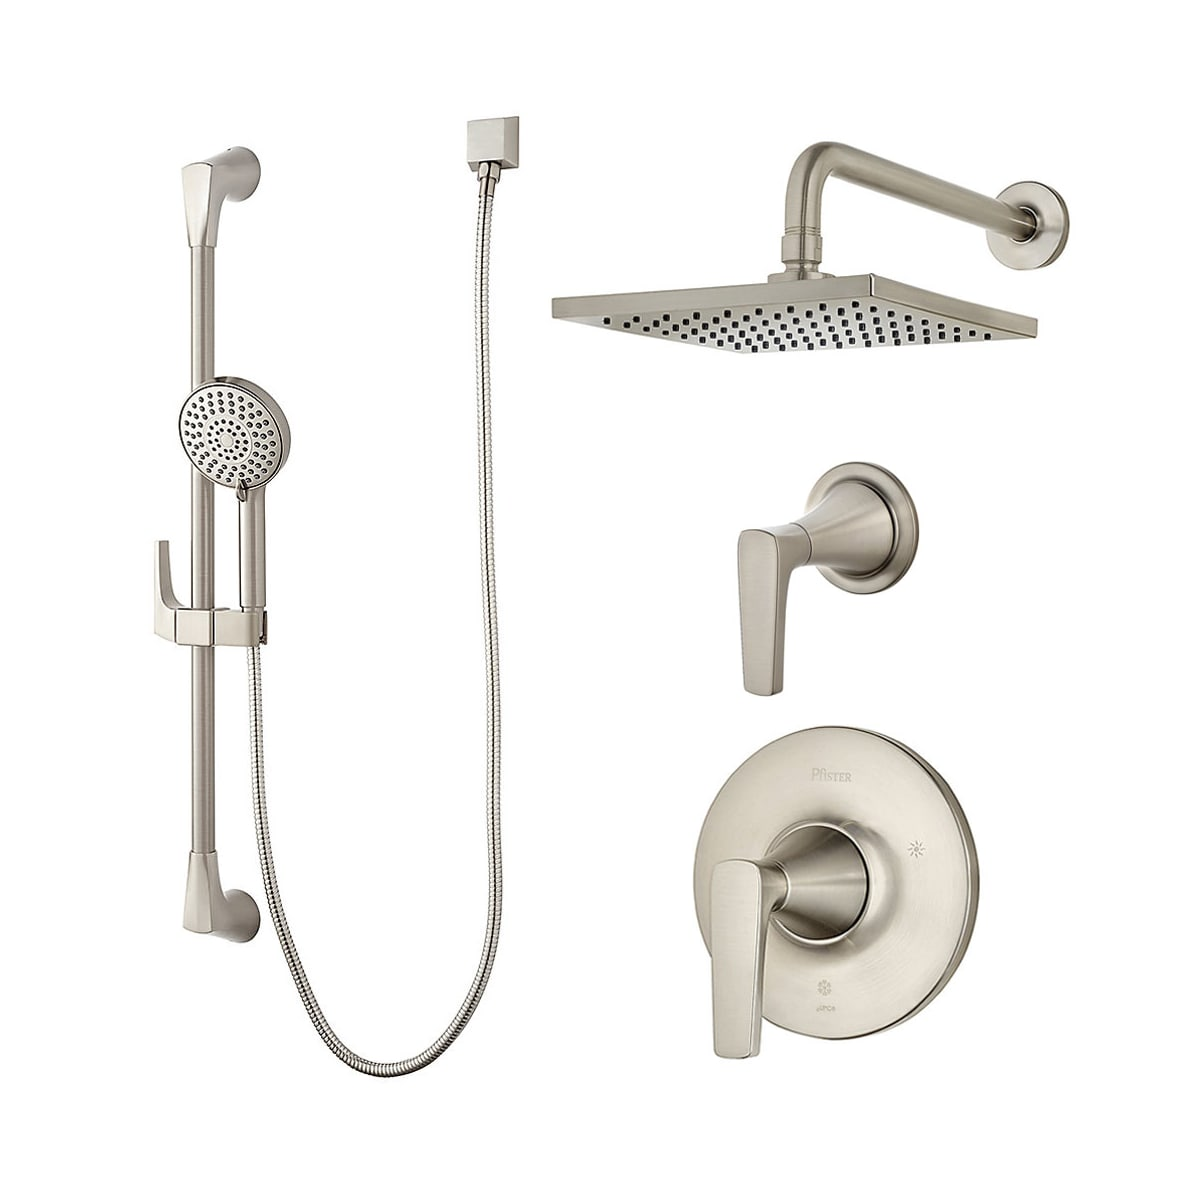 Pfister B89 7mfk Brushed Nickel Kelen Shower System With